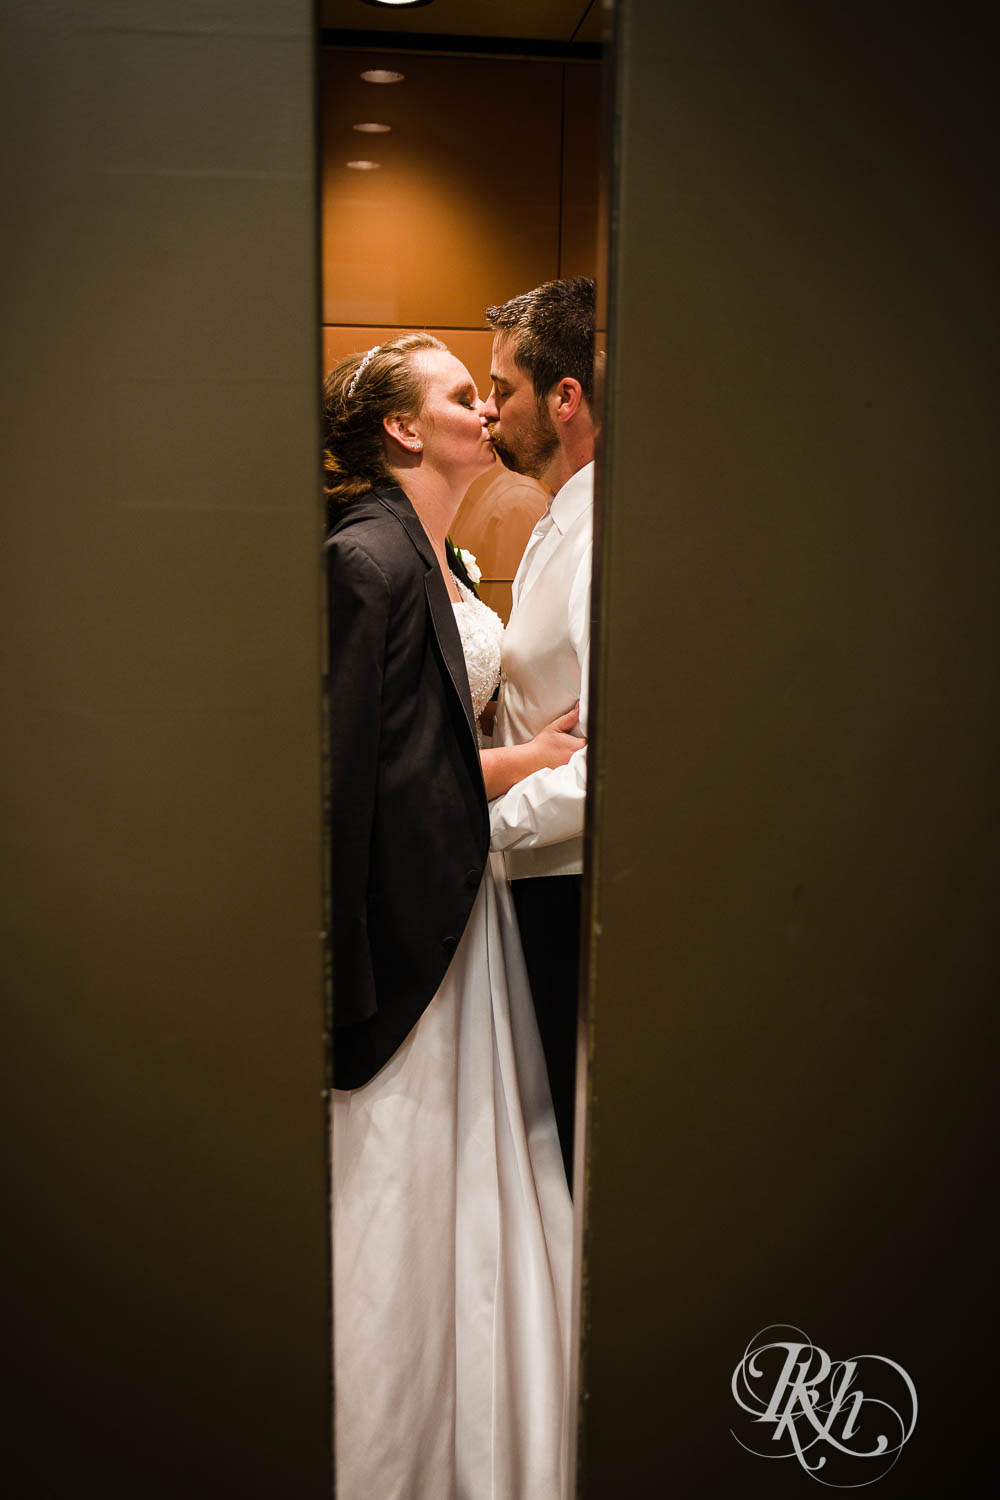 Kayla & Travis - Minnesota Wedding Photography - Crowne Plaza Minneapolis - RKH Images - Blog  (57 of 61).jpg